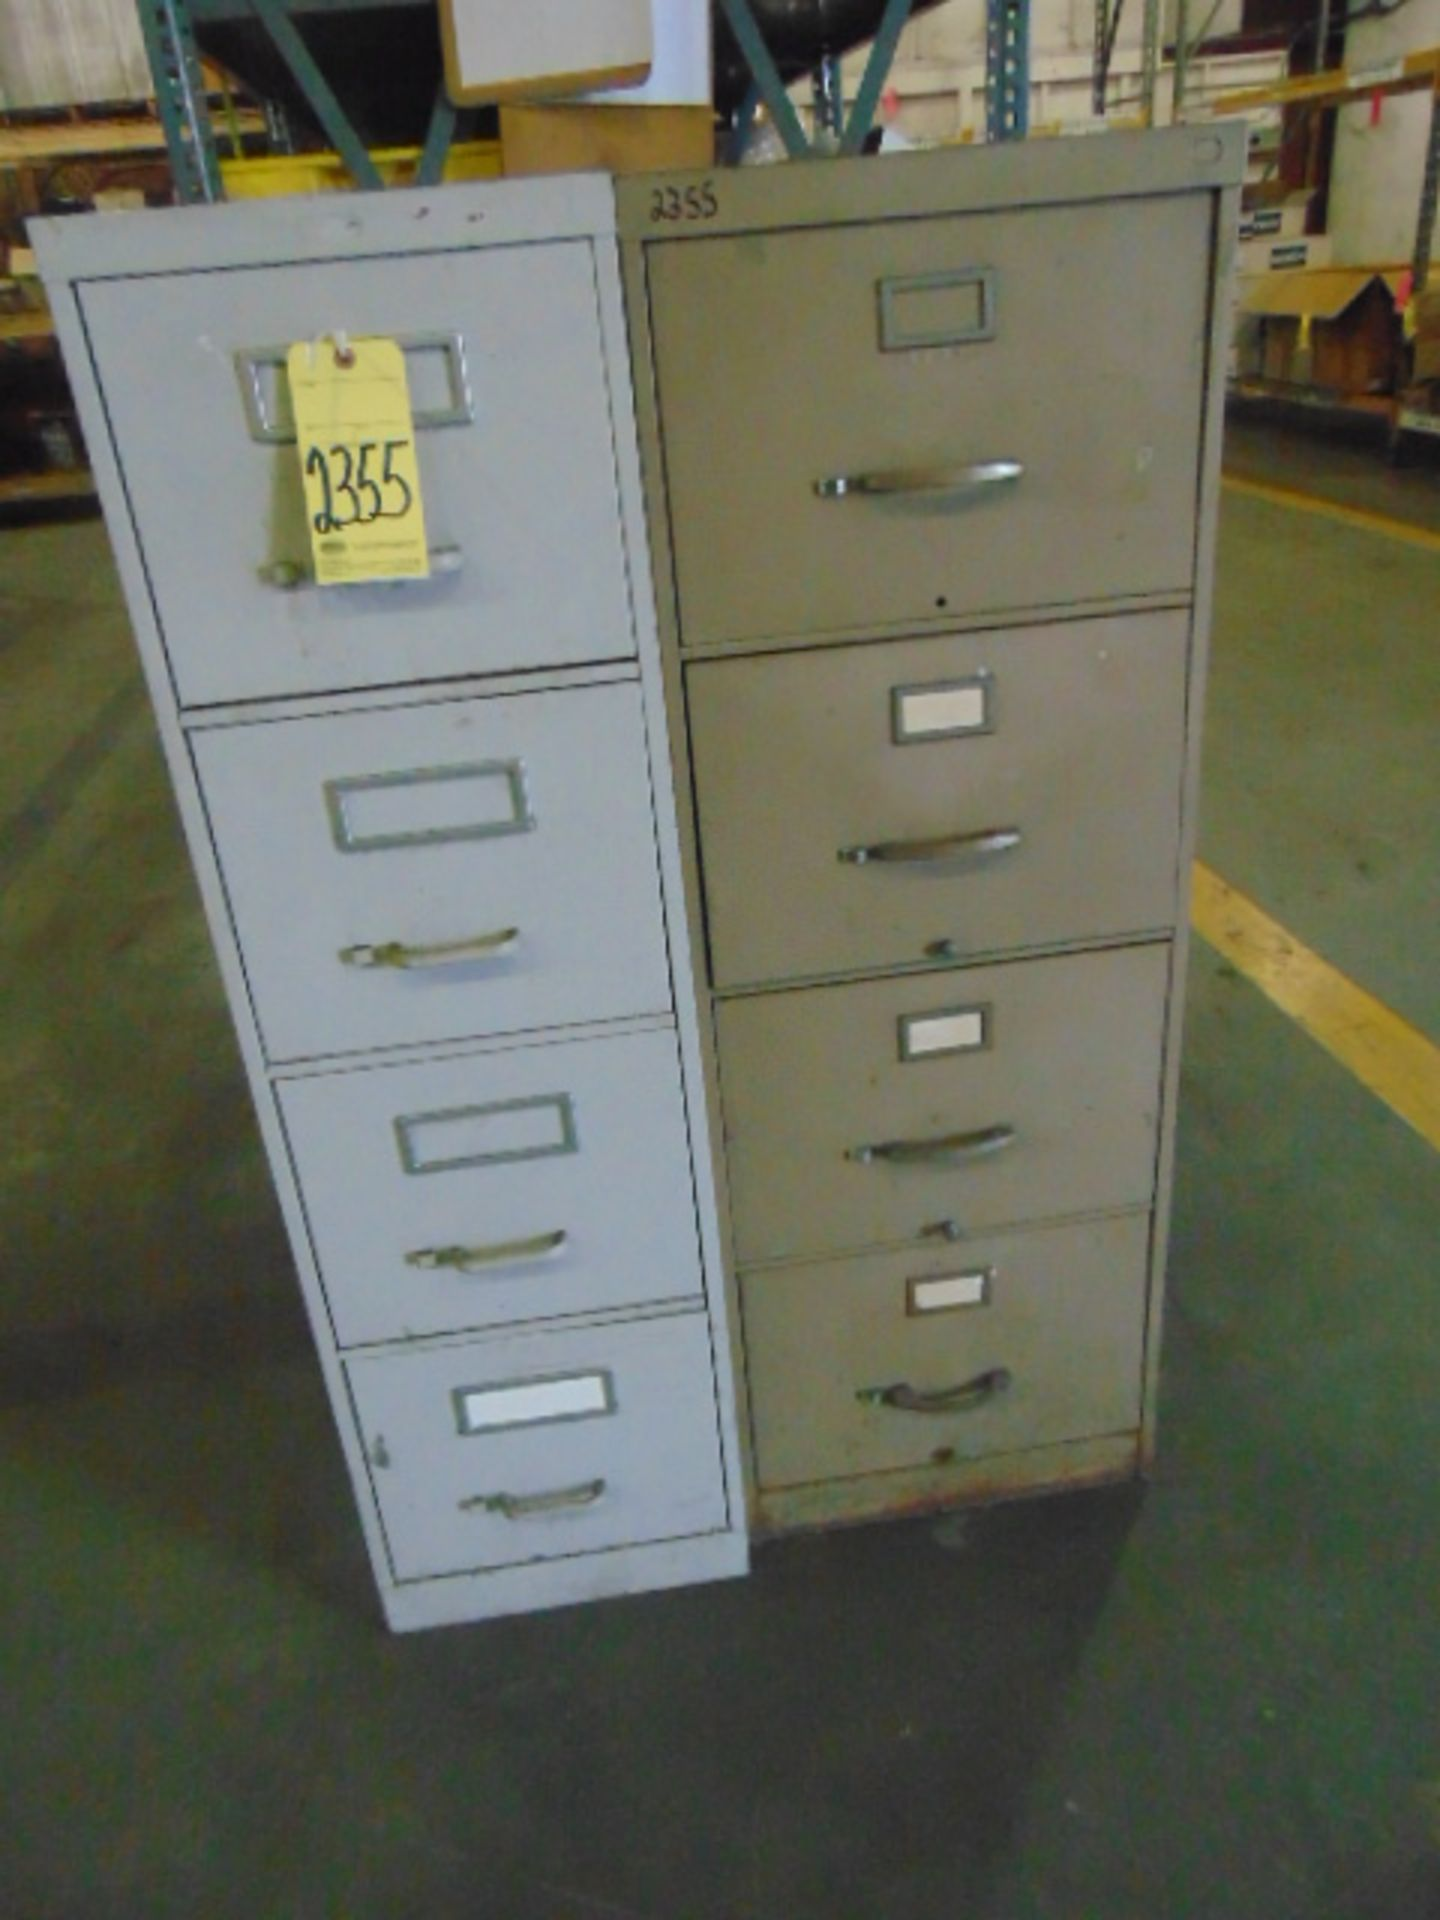 Lot 2355 - LOT CONSISTING OF: office supplies, w/2-door cabinet, (2) 4-drawer file cabinets